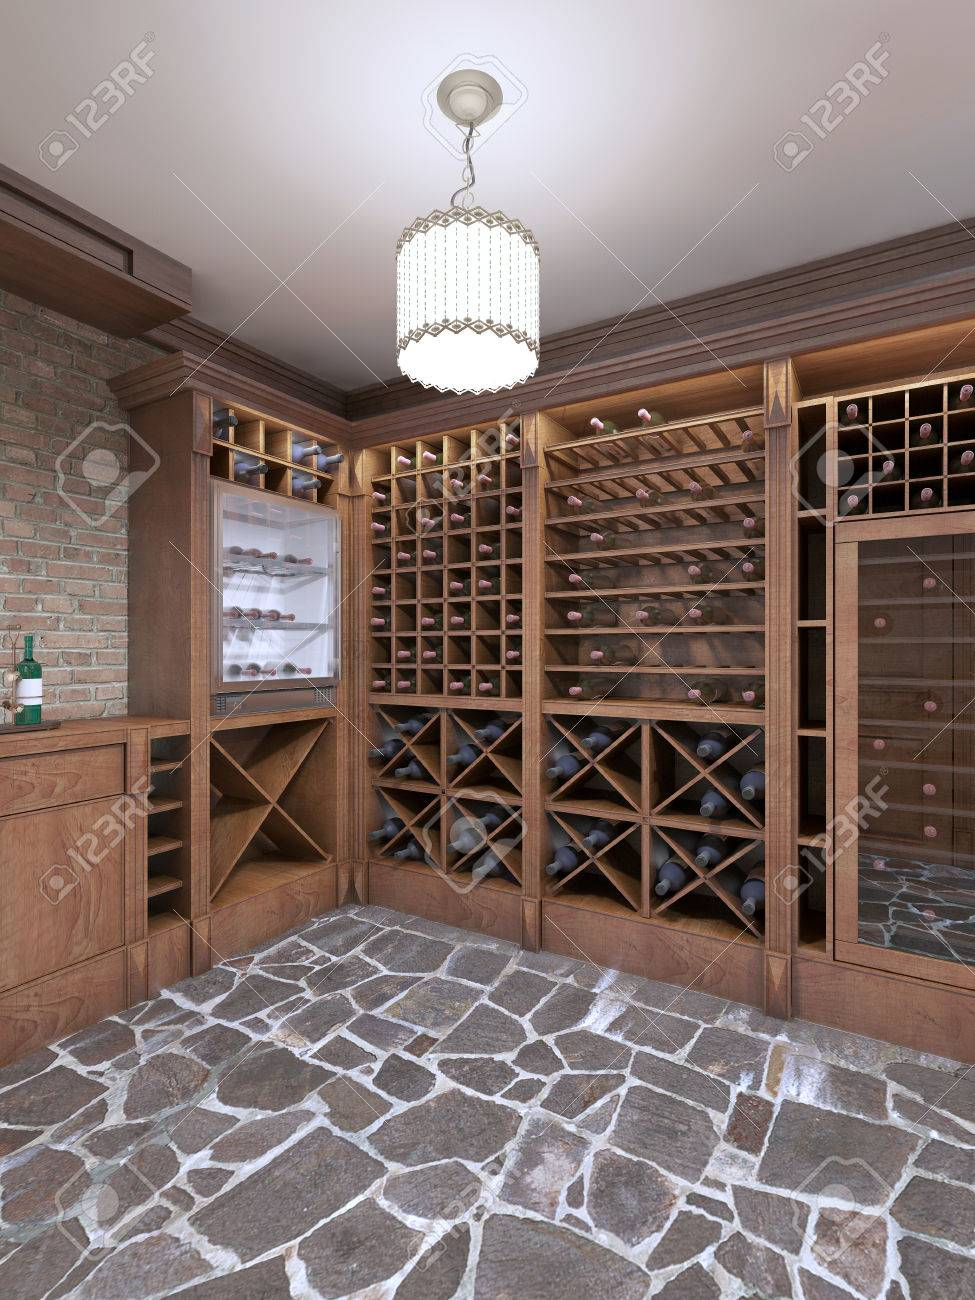 Wine Cellar In The Basement Of The House In A Rustic Style Open Stock Photo Picture And Royalty Free Image Image 66095285